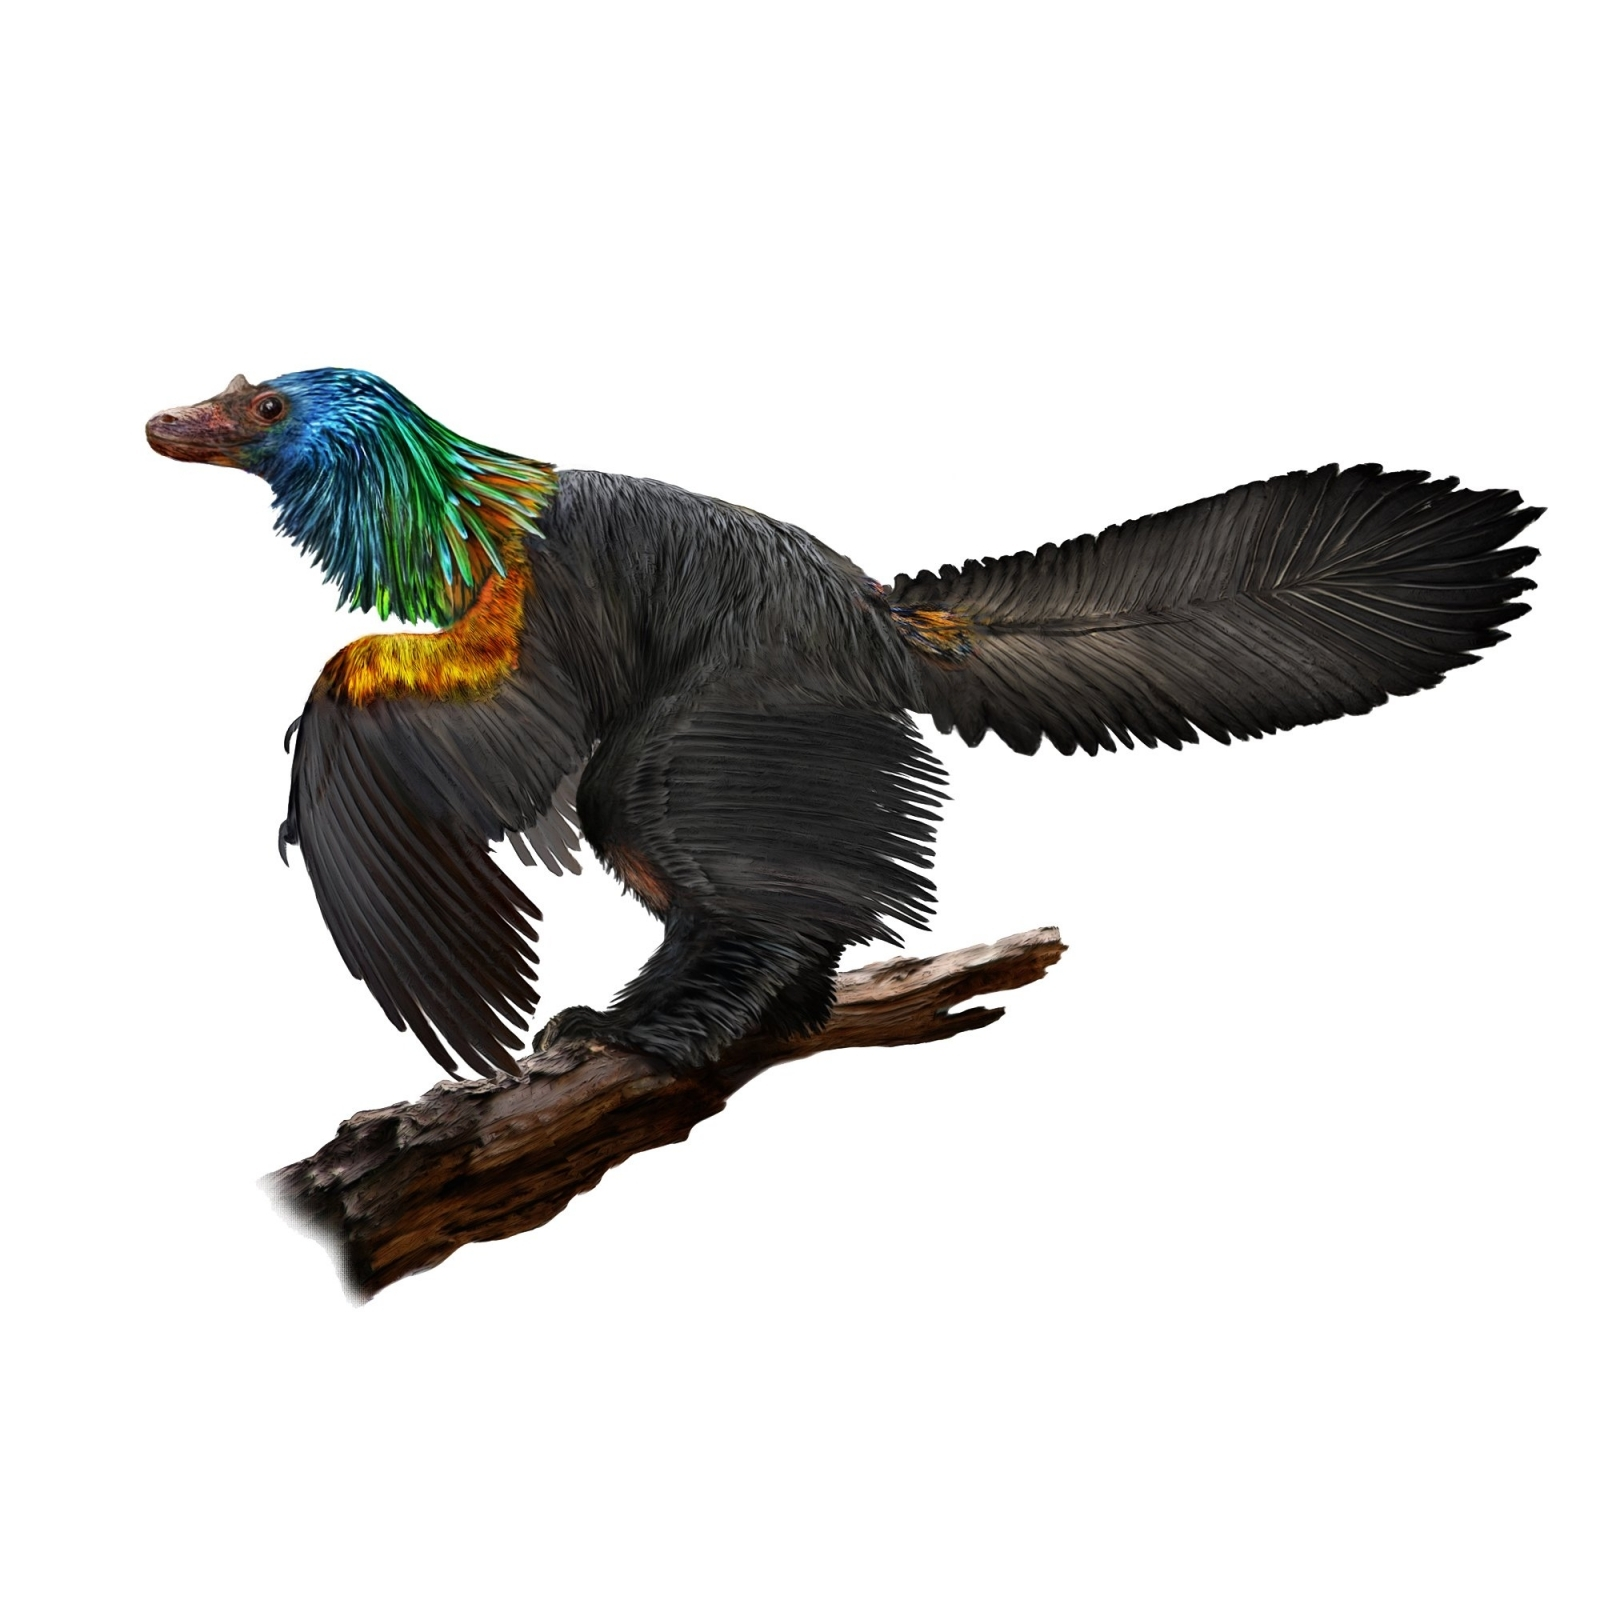 Birdlike Dinosaur Had Iridescent Feathers, Scientists Say